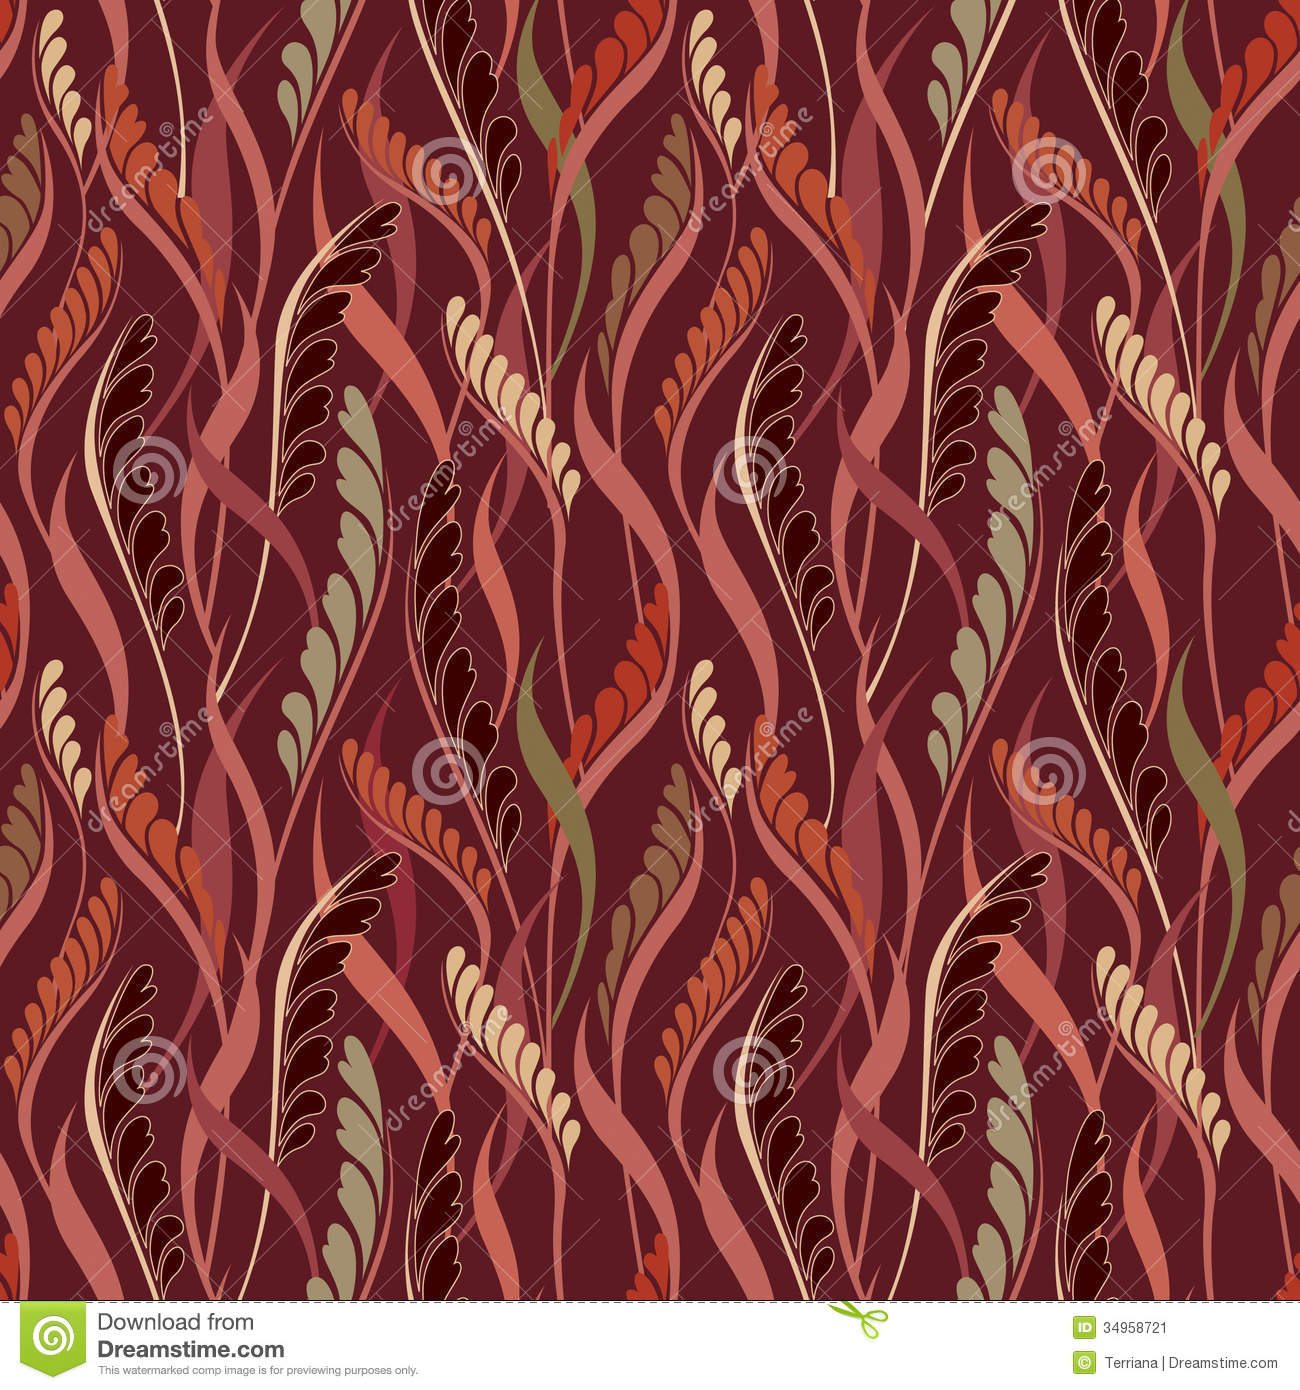 Line Texture Seamless : Leaves scroll seamless background floral line texture